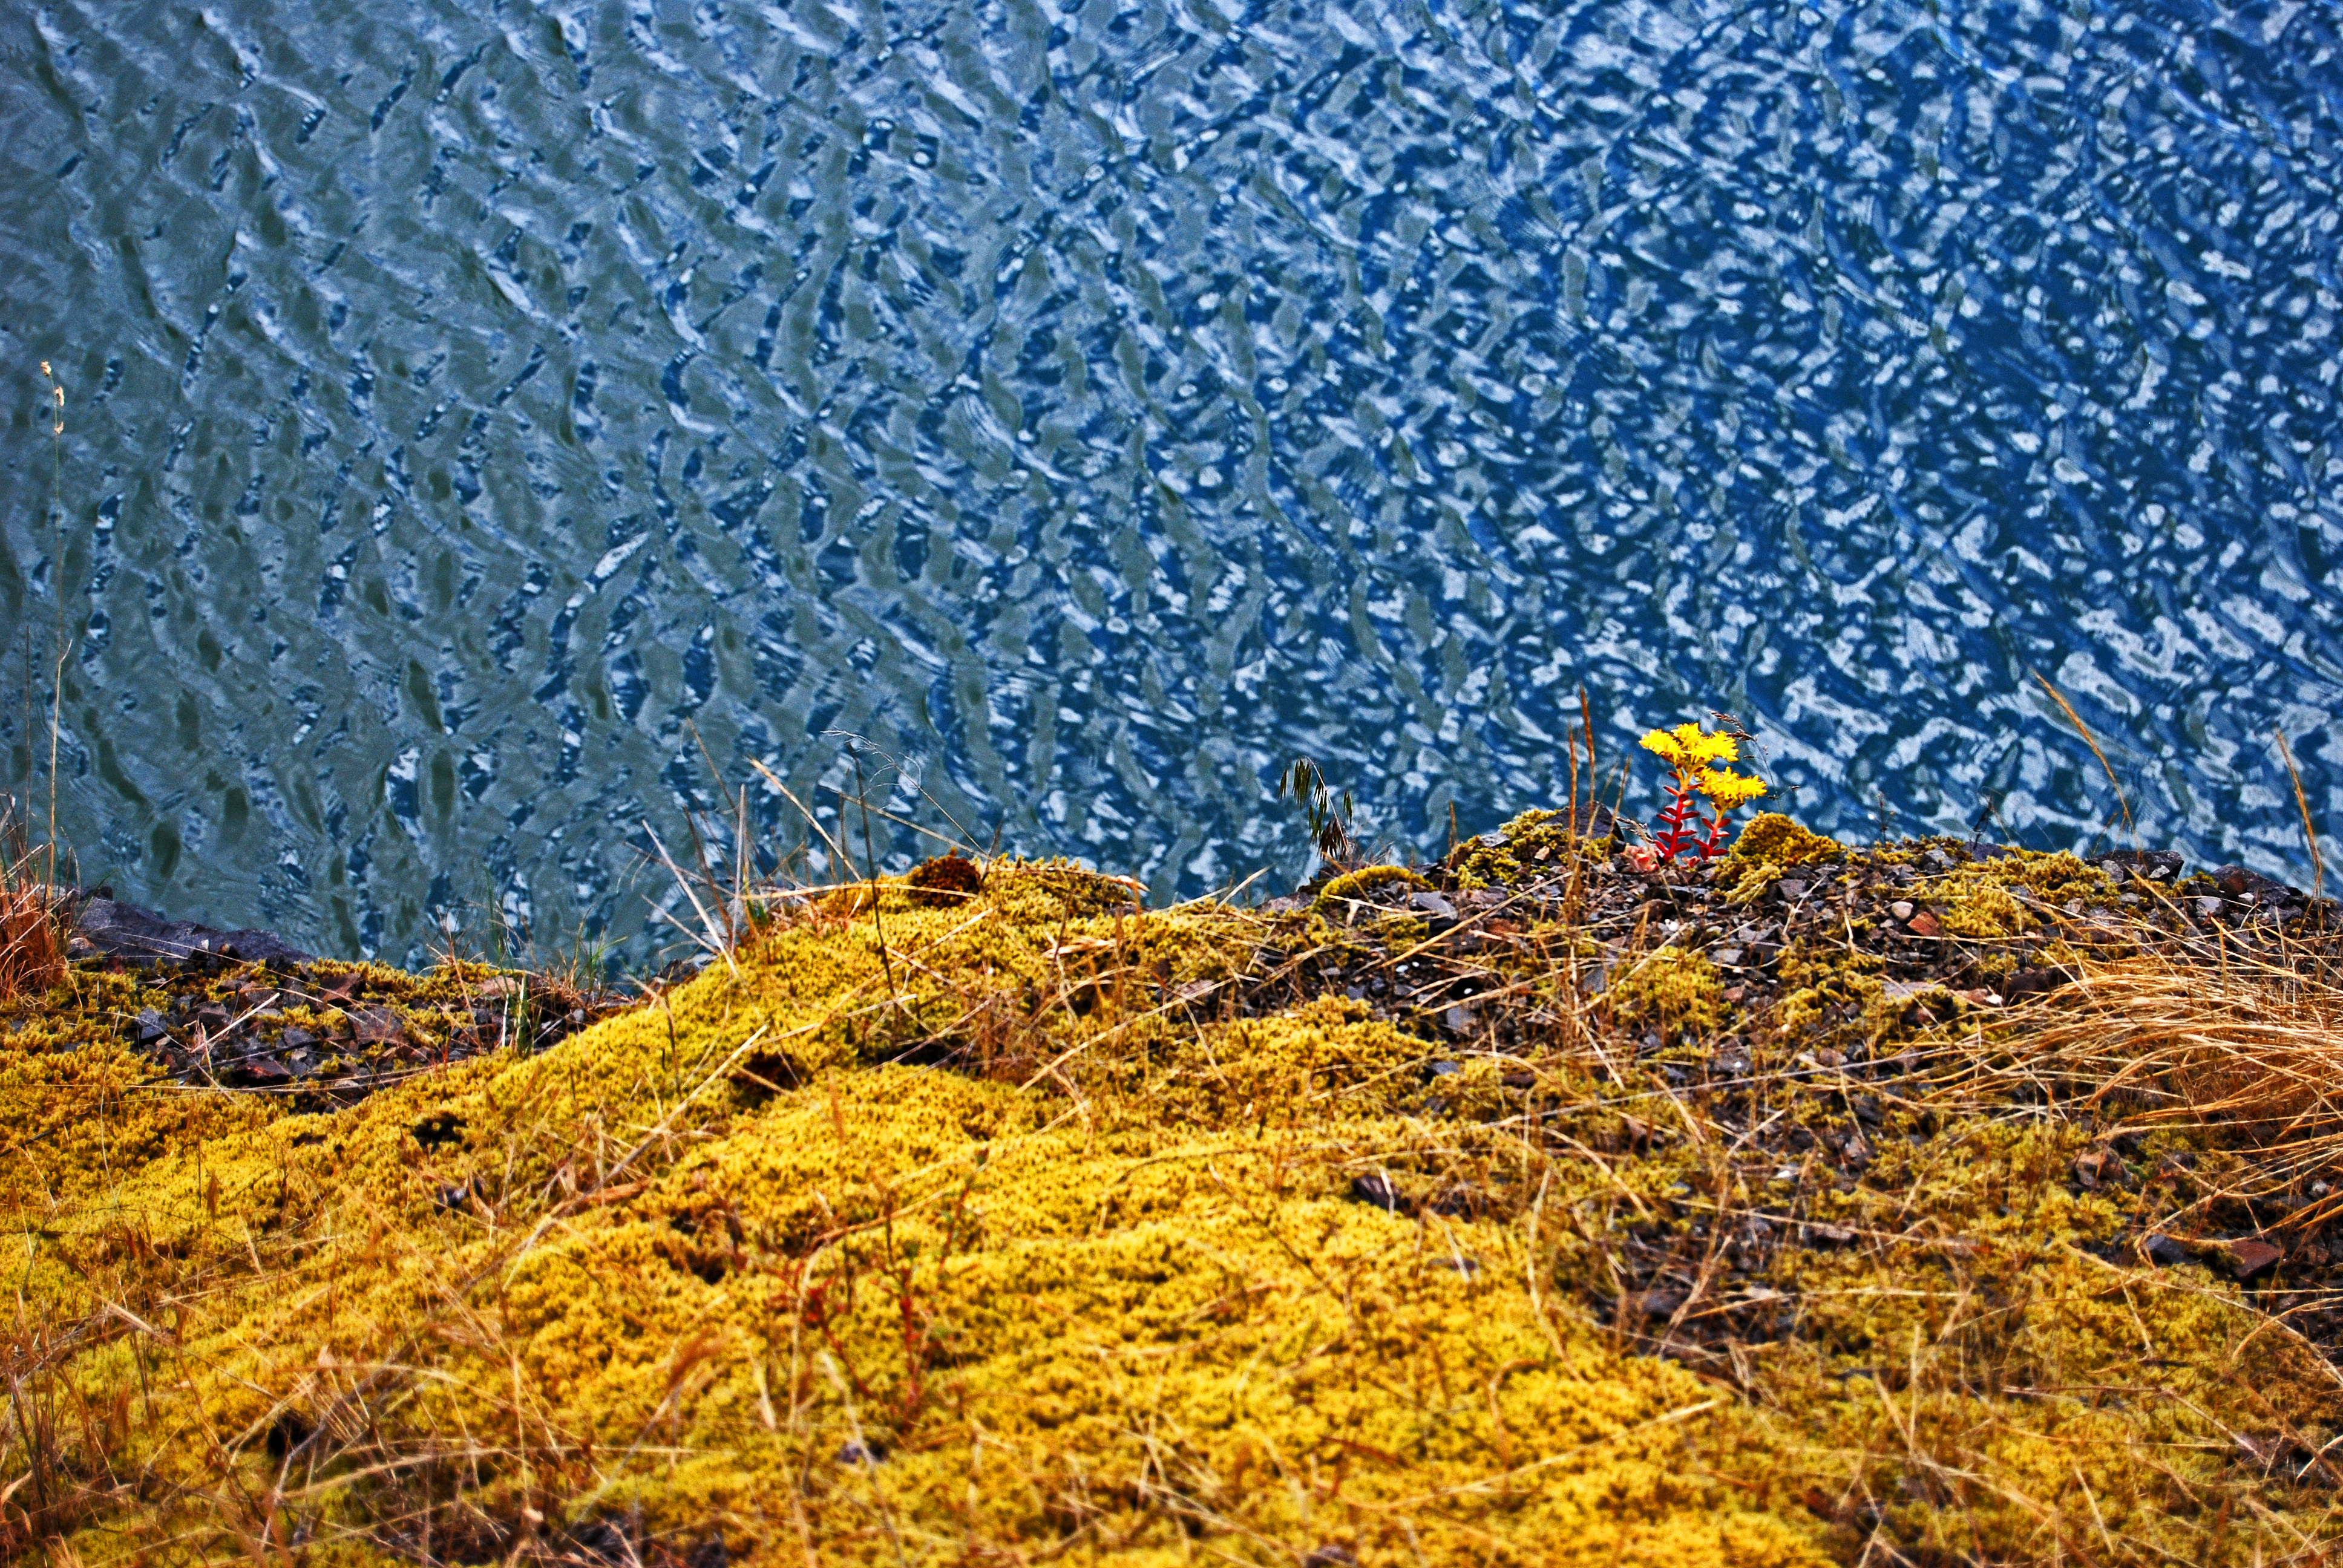 """""""Plants (OR 39-1, Cougar Lake)"""" © Keith Moul"""